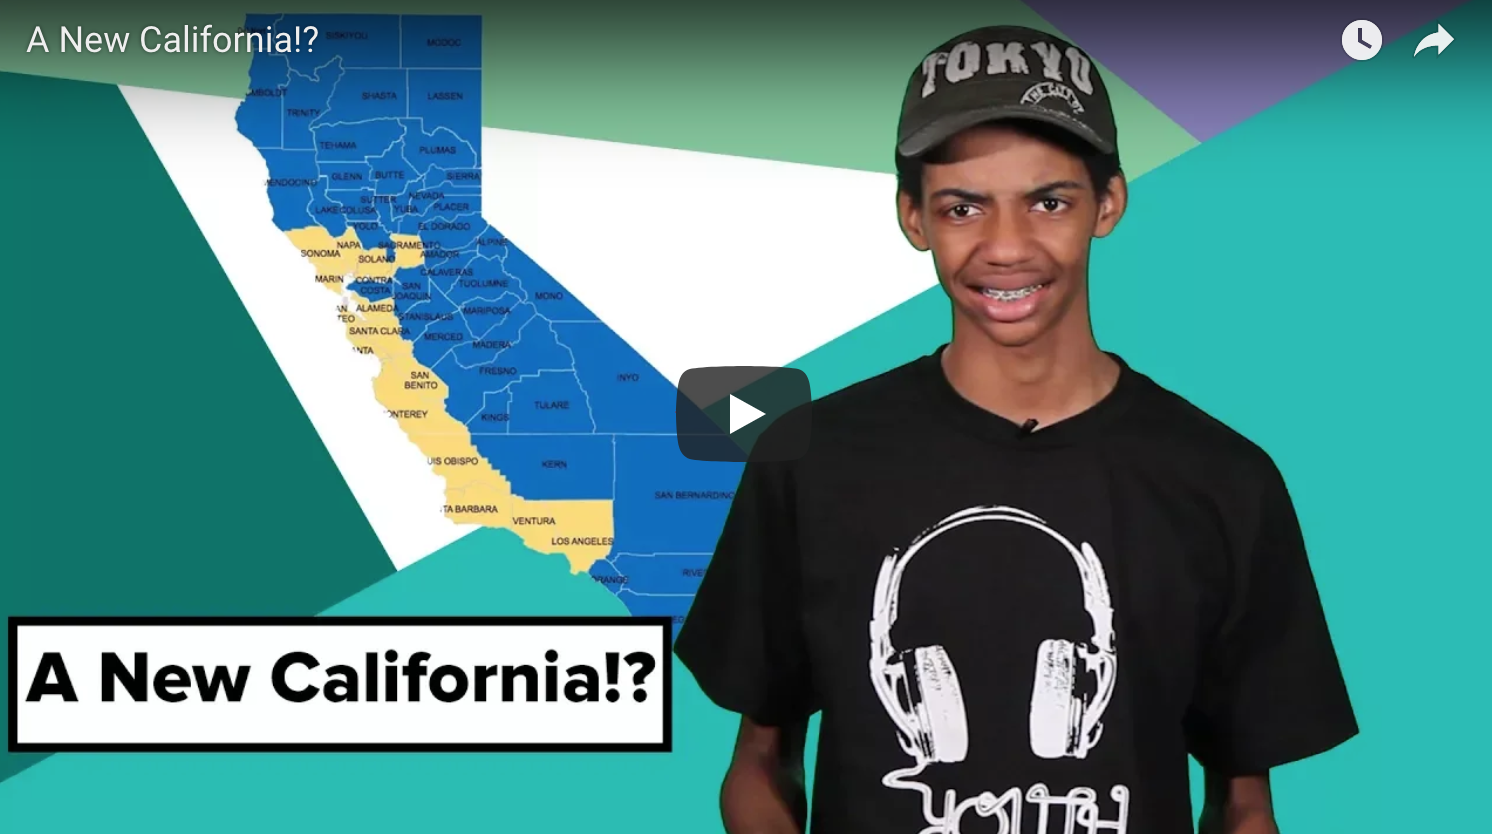 A New California: Should CA Become Two States?